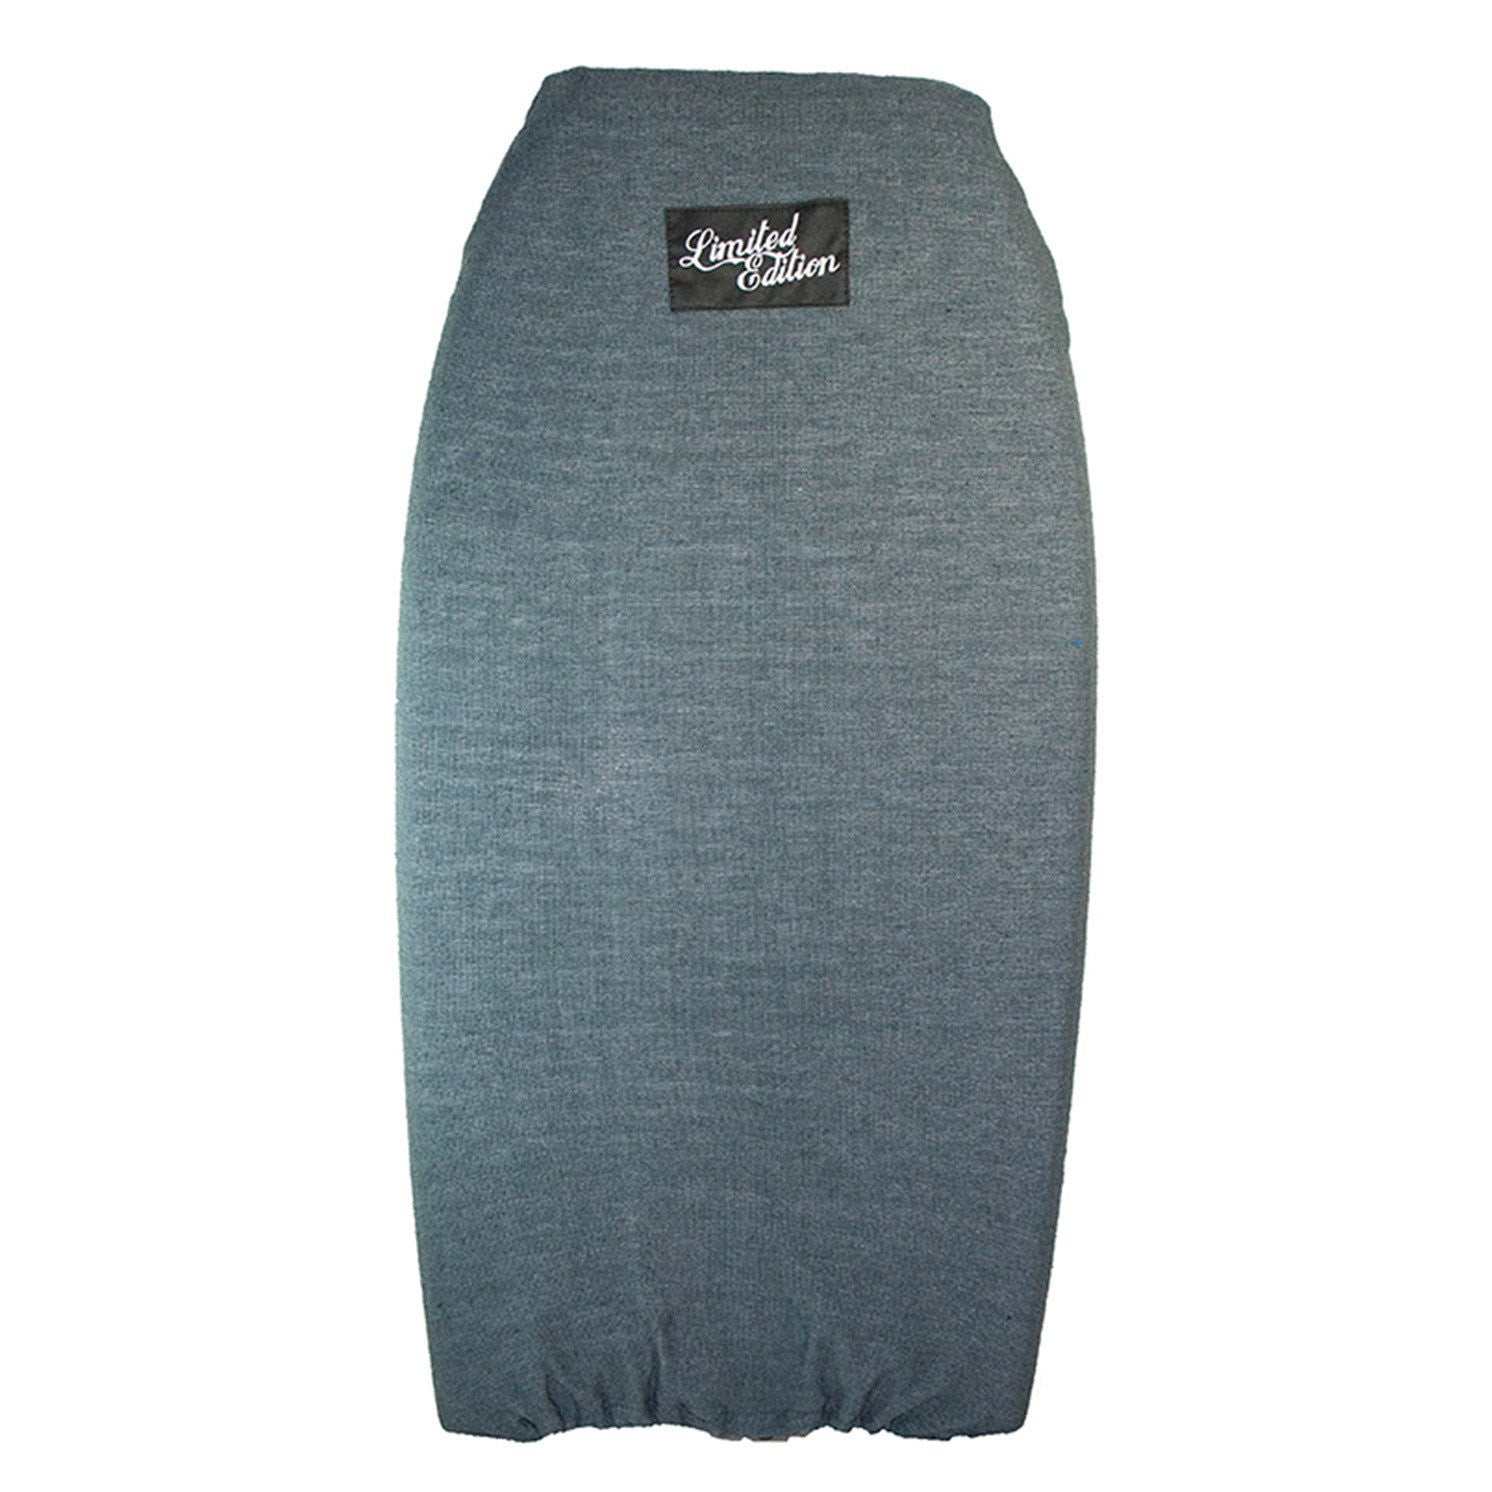 Limited Edition Board Sock - Grey